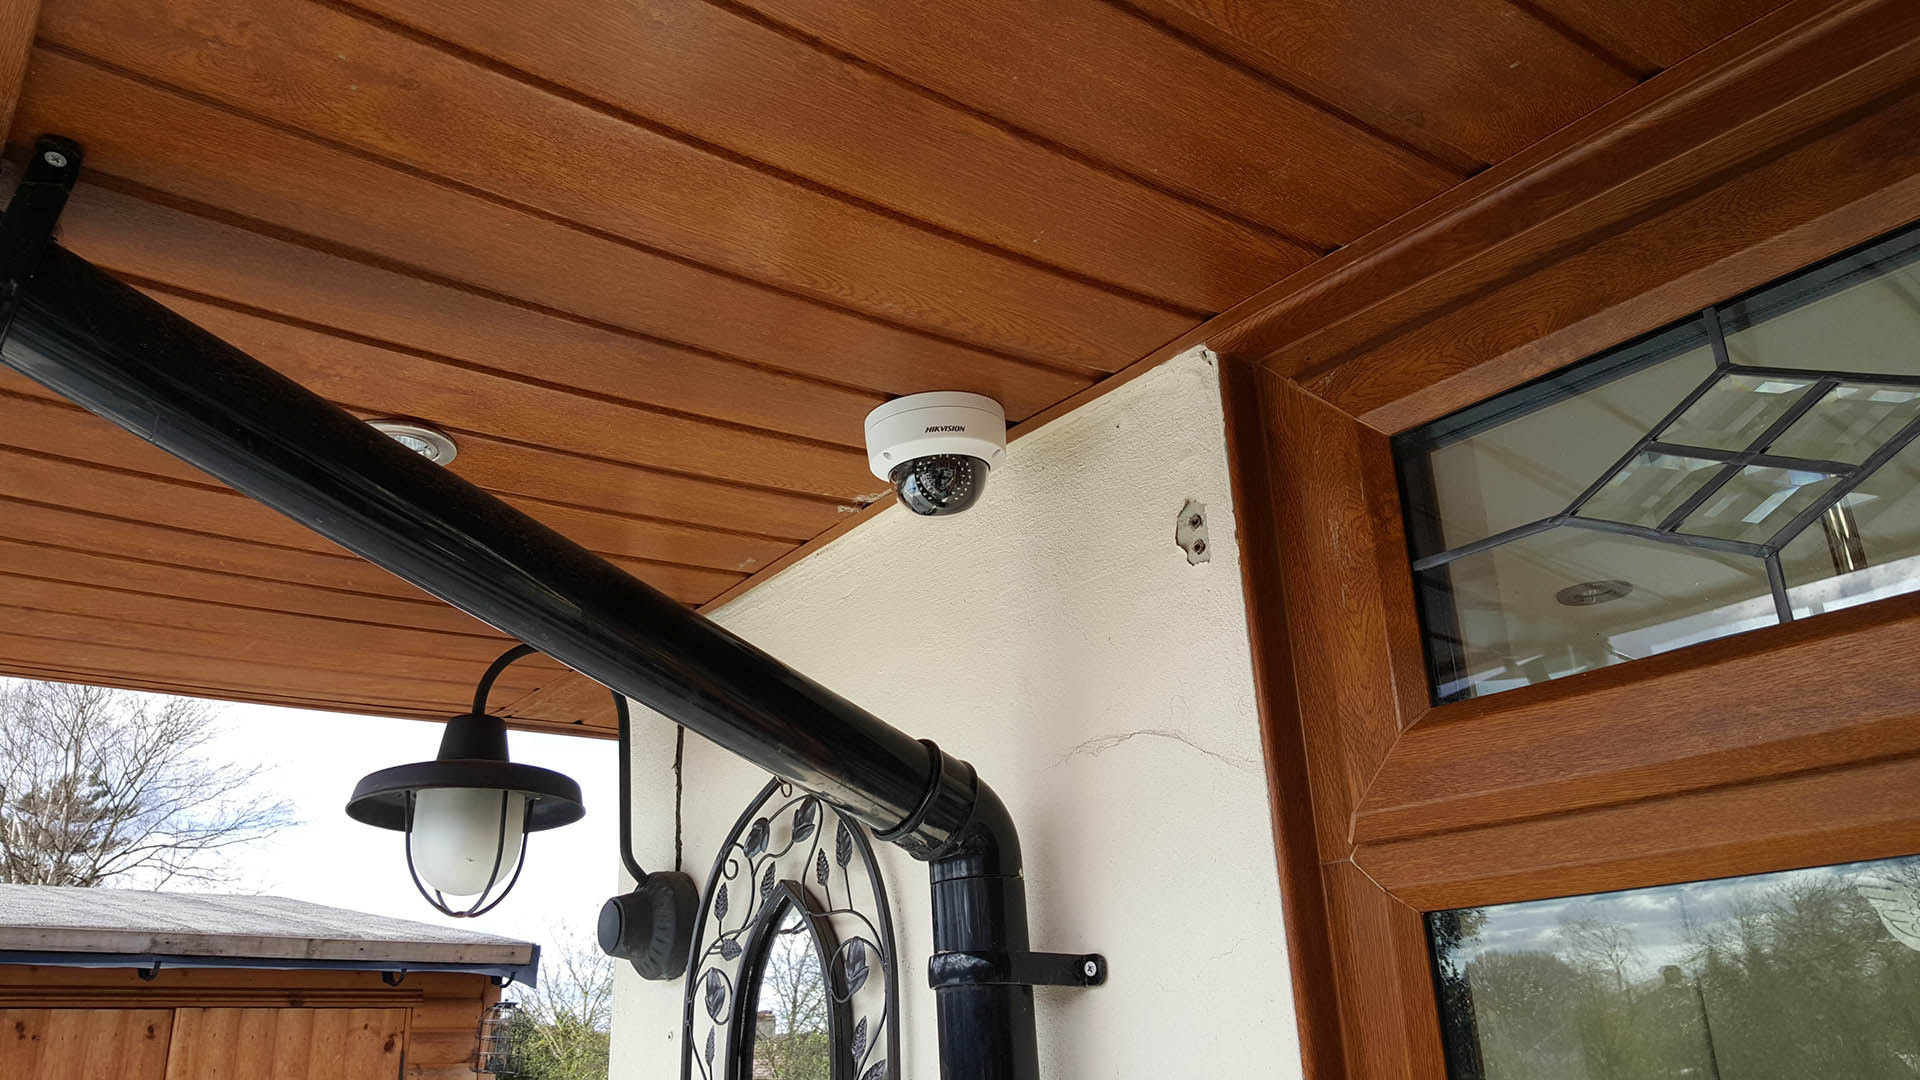 CCTV Installation in Hornchurch